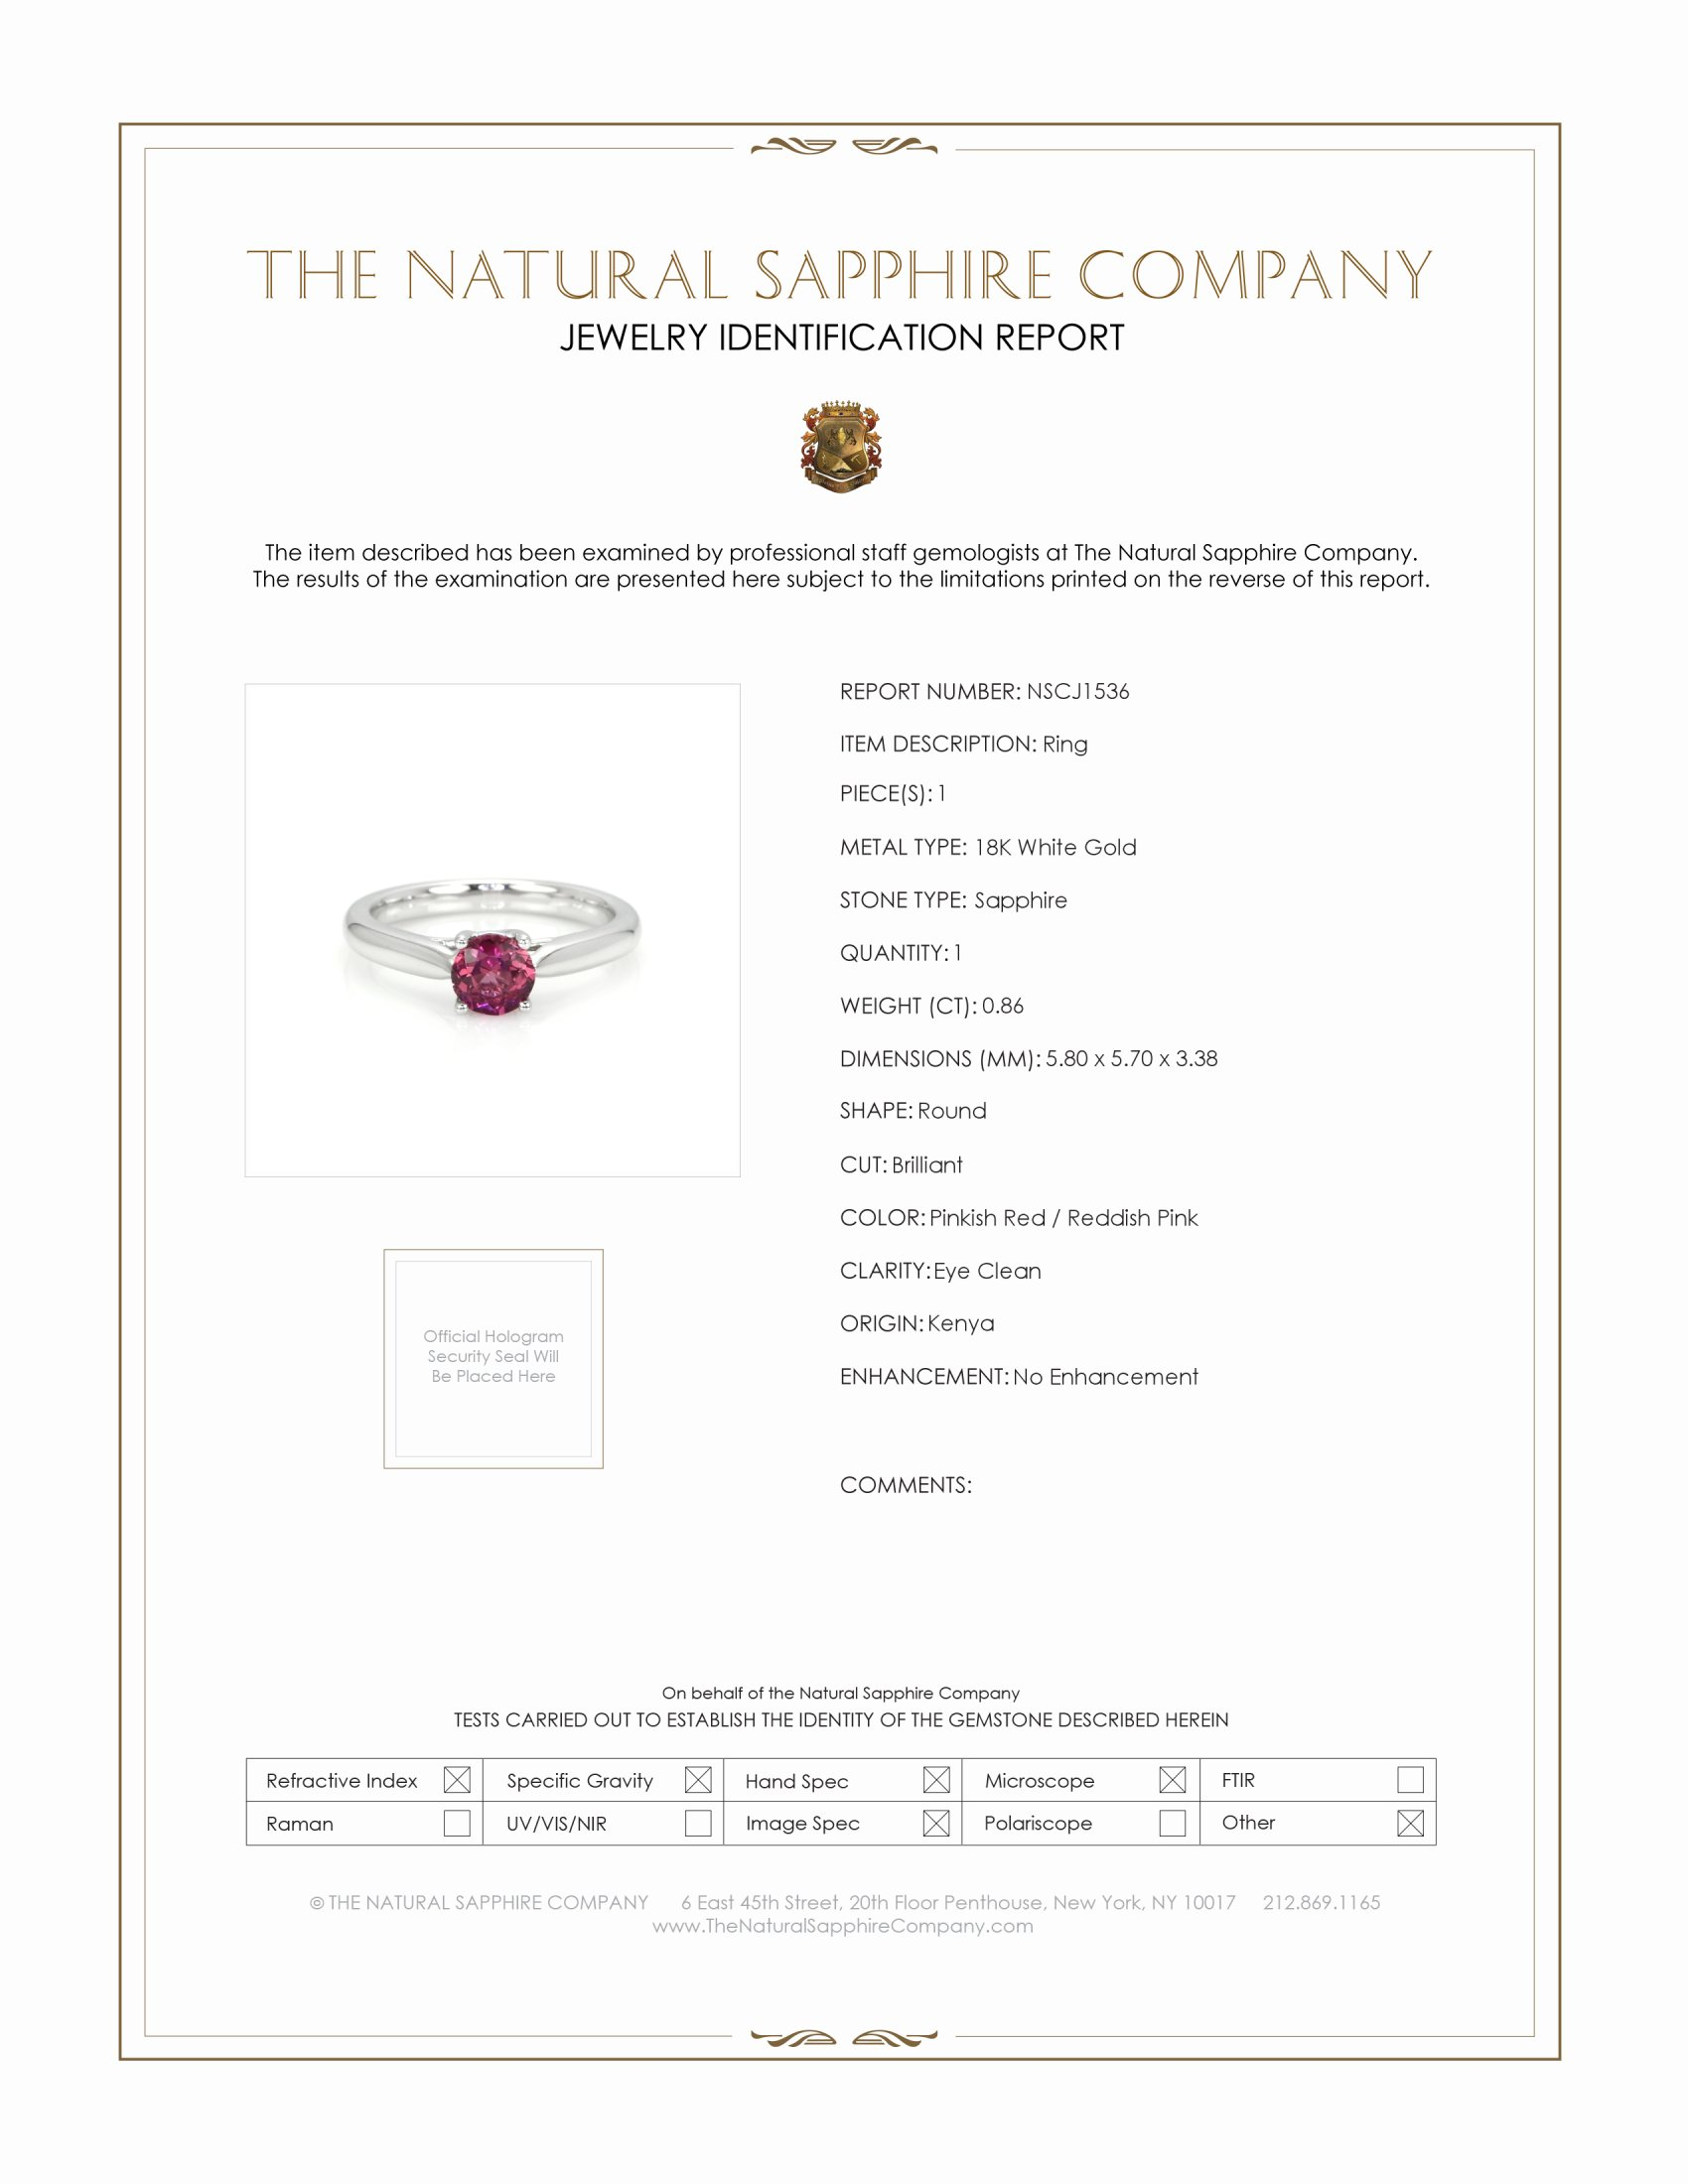 0.86ct Ruby Ring Certification